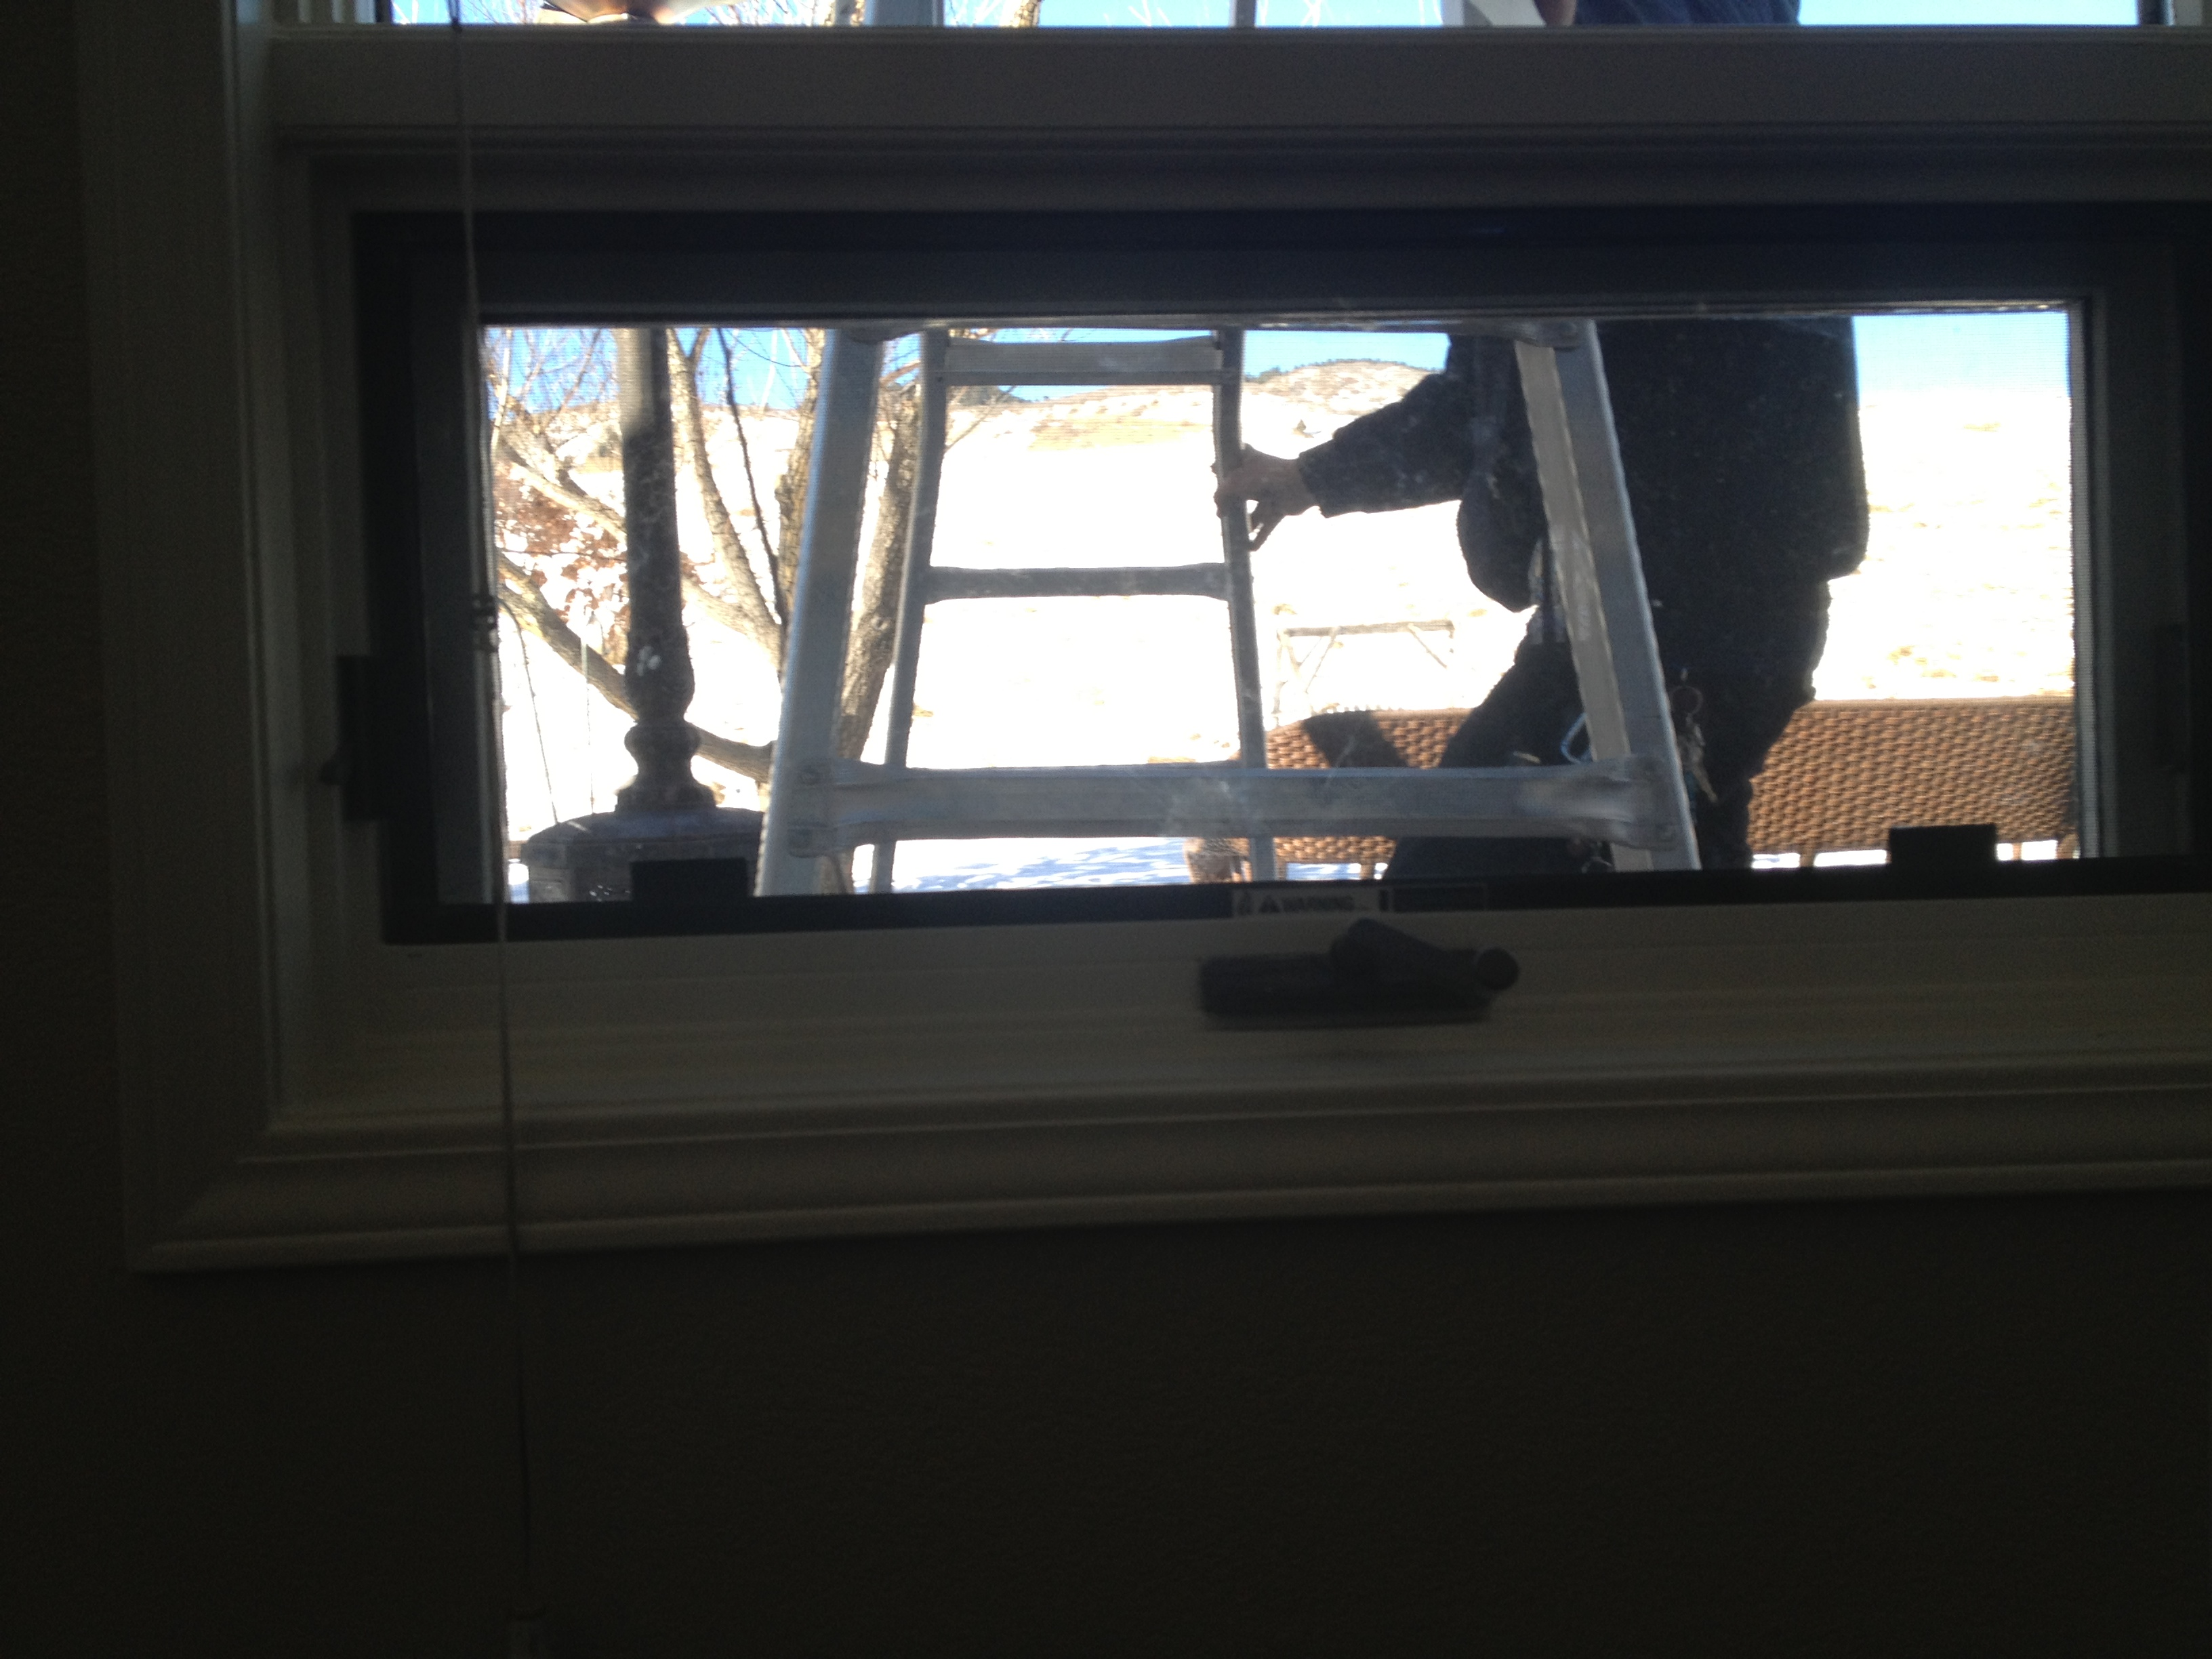 residential window replacement denver home window